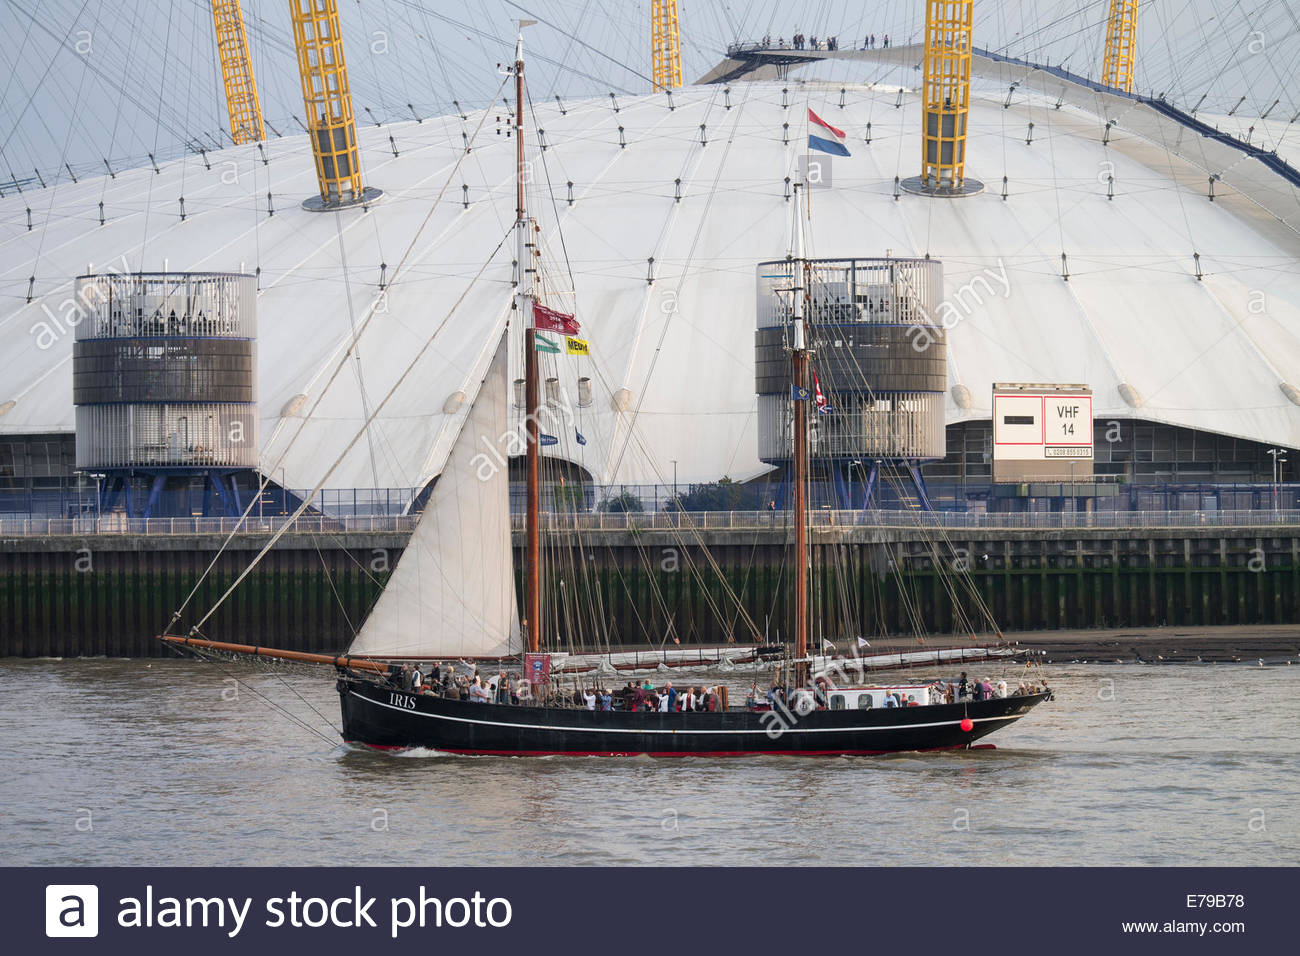 The 2014 Tall Ships Festival, London: traditional Dutch herring-lugger, Iris, passing the O2 Arena at Greenwich. - Stock Image